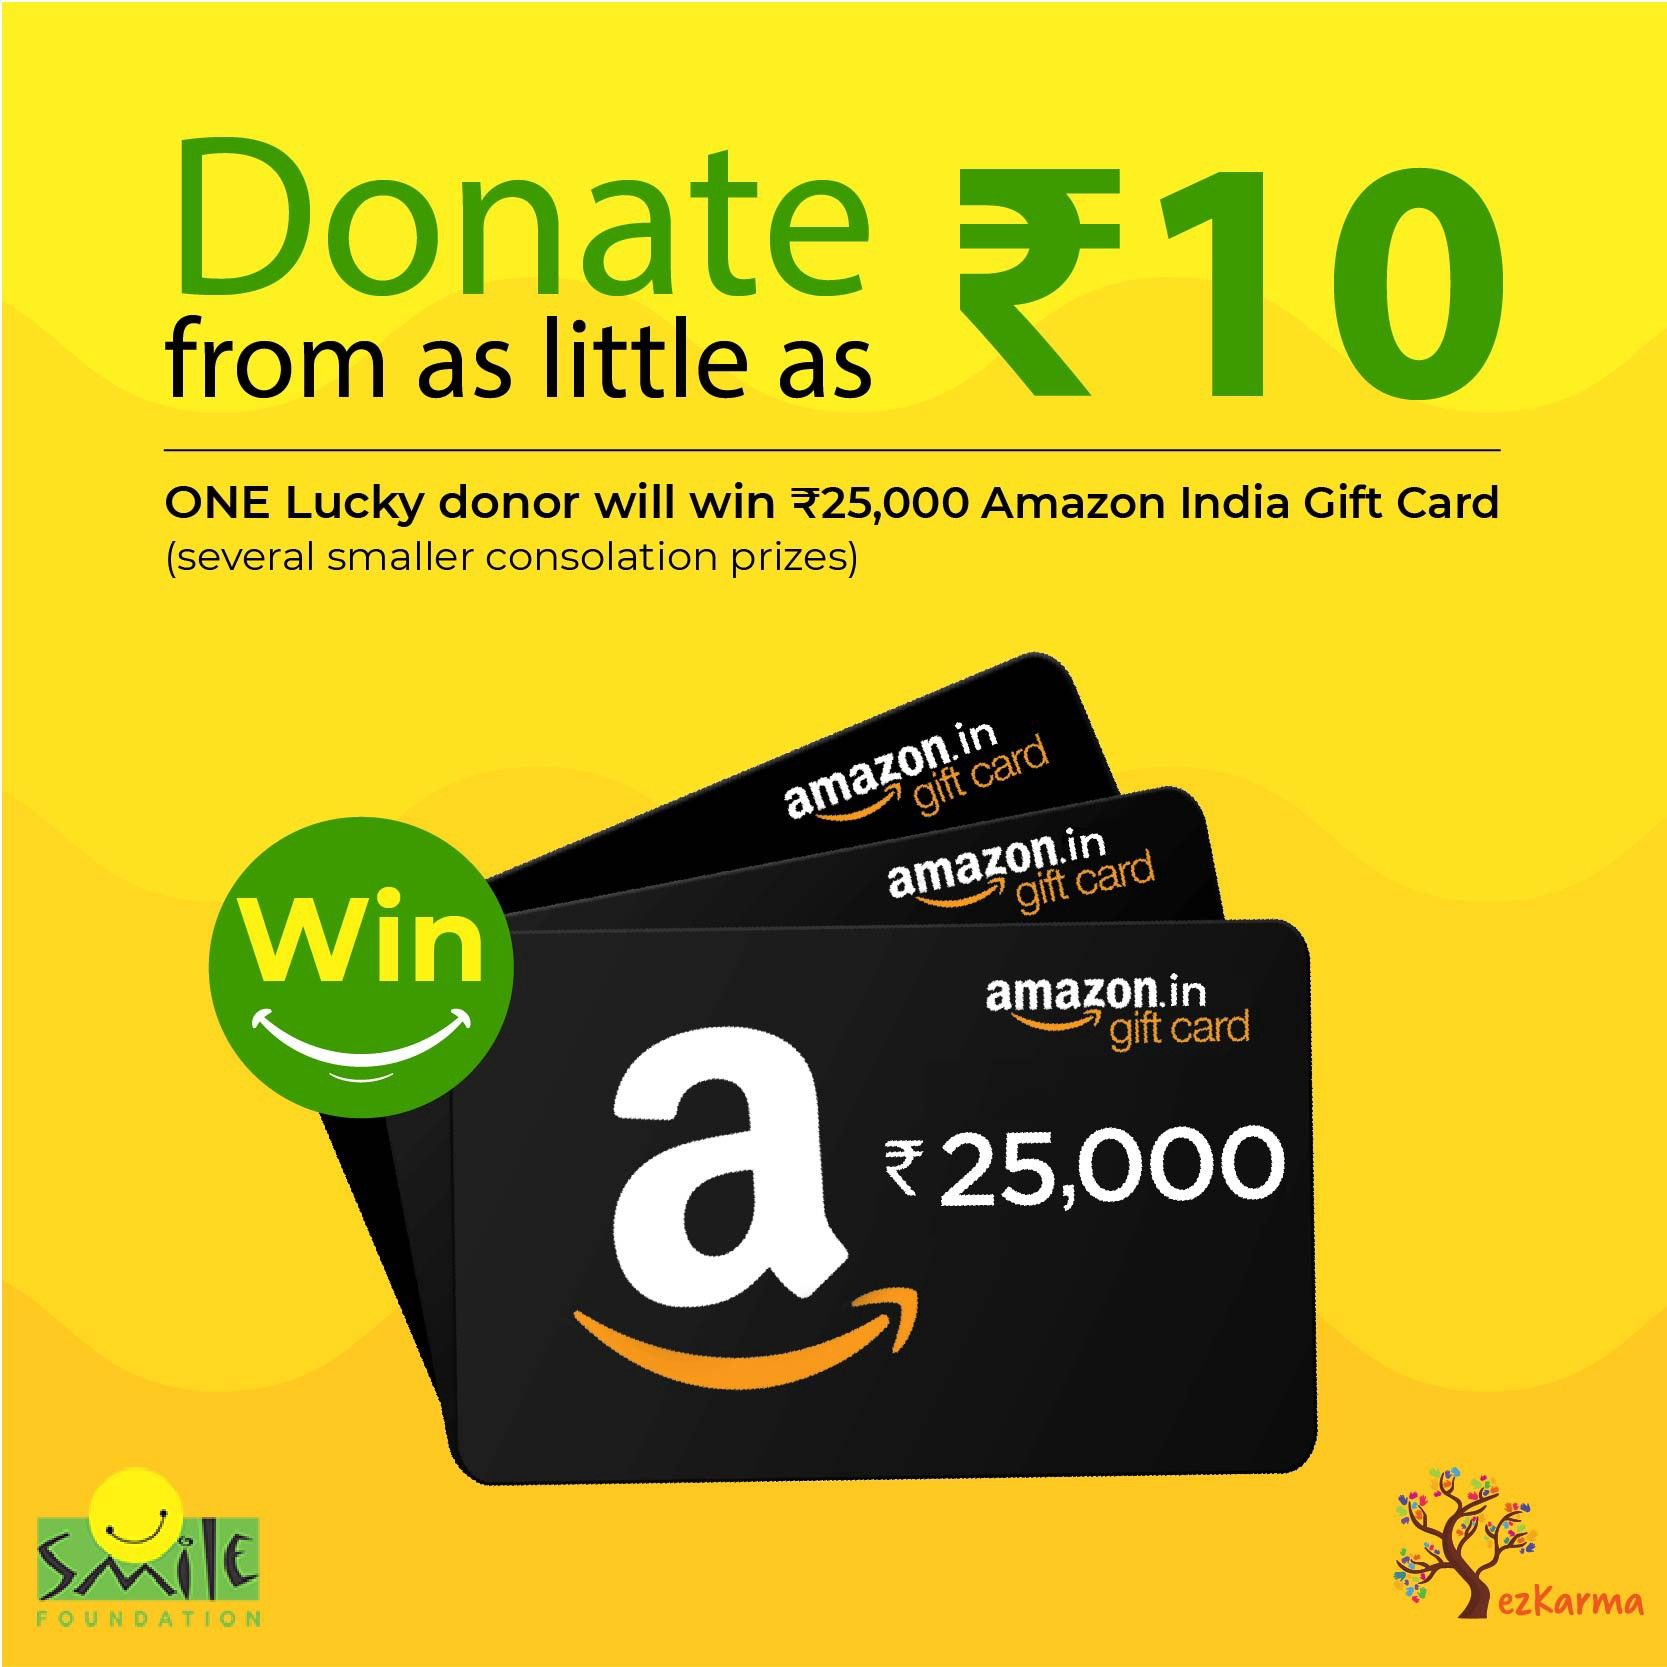 Amazon Gift Card Amazon Gift Card Free Free Amazon Products Amazon Gift Cards